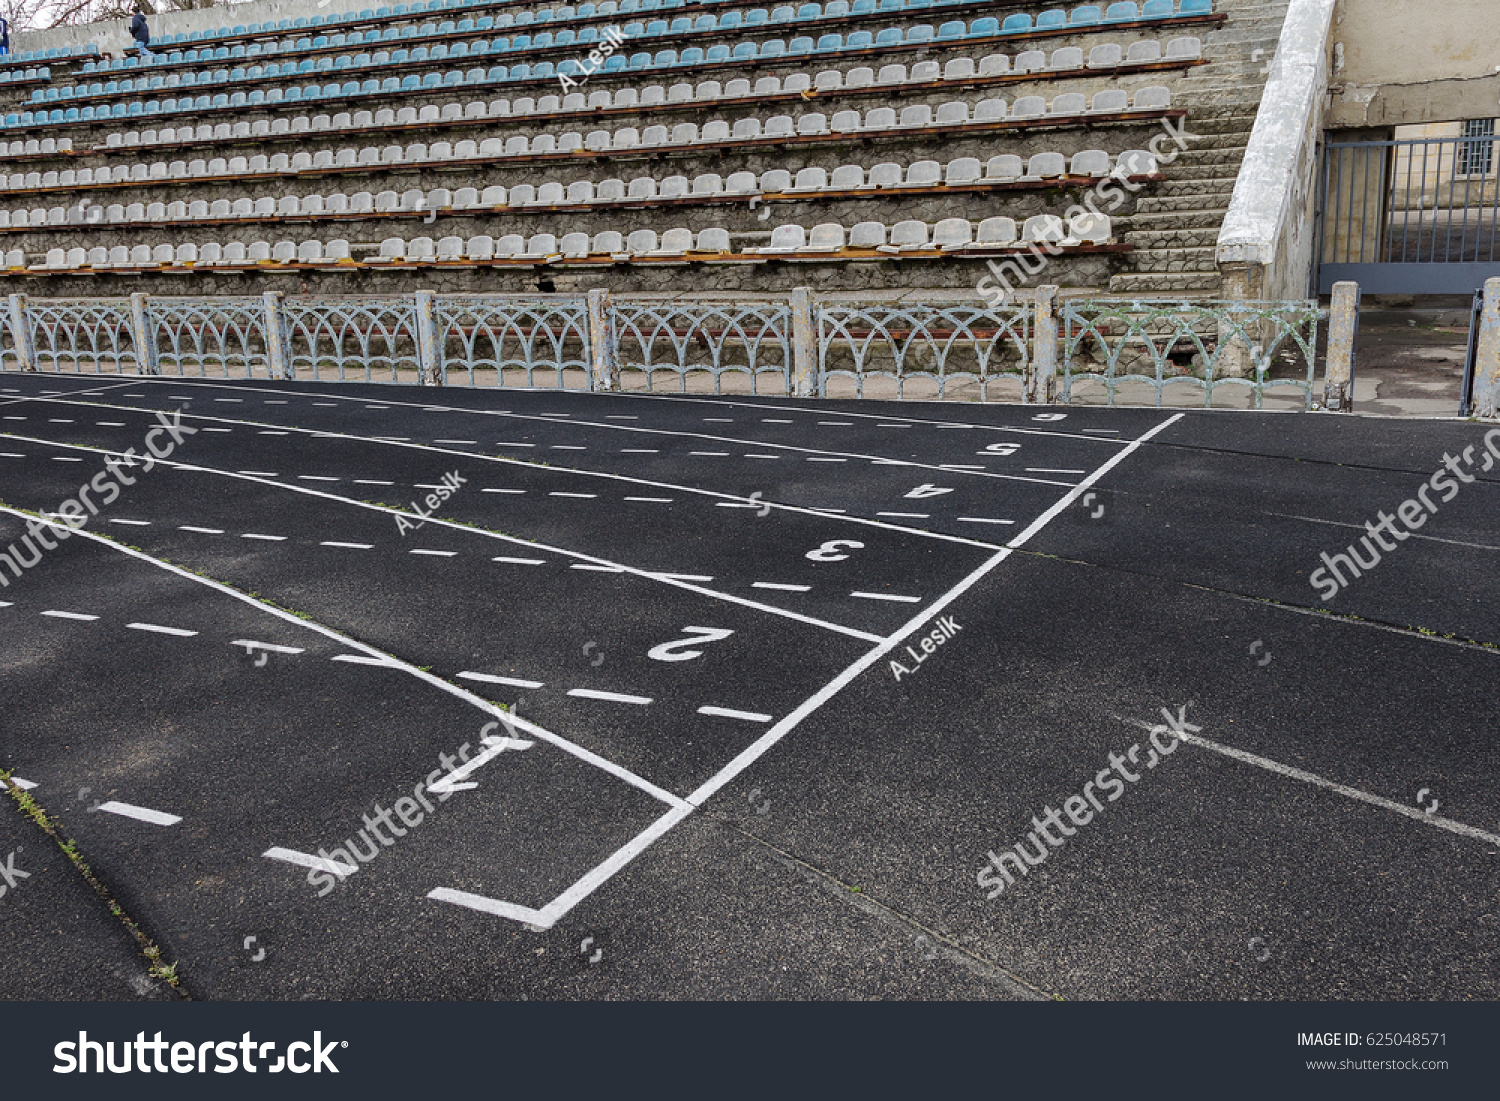 Old Torn Running Track Old Racing Stock Photo 625048571 - Shutterstock